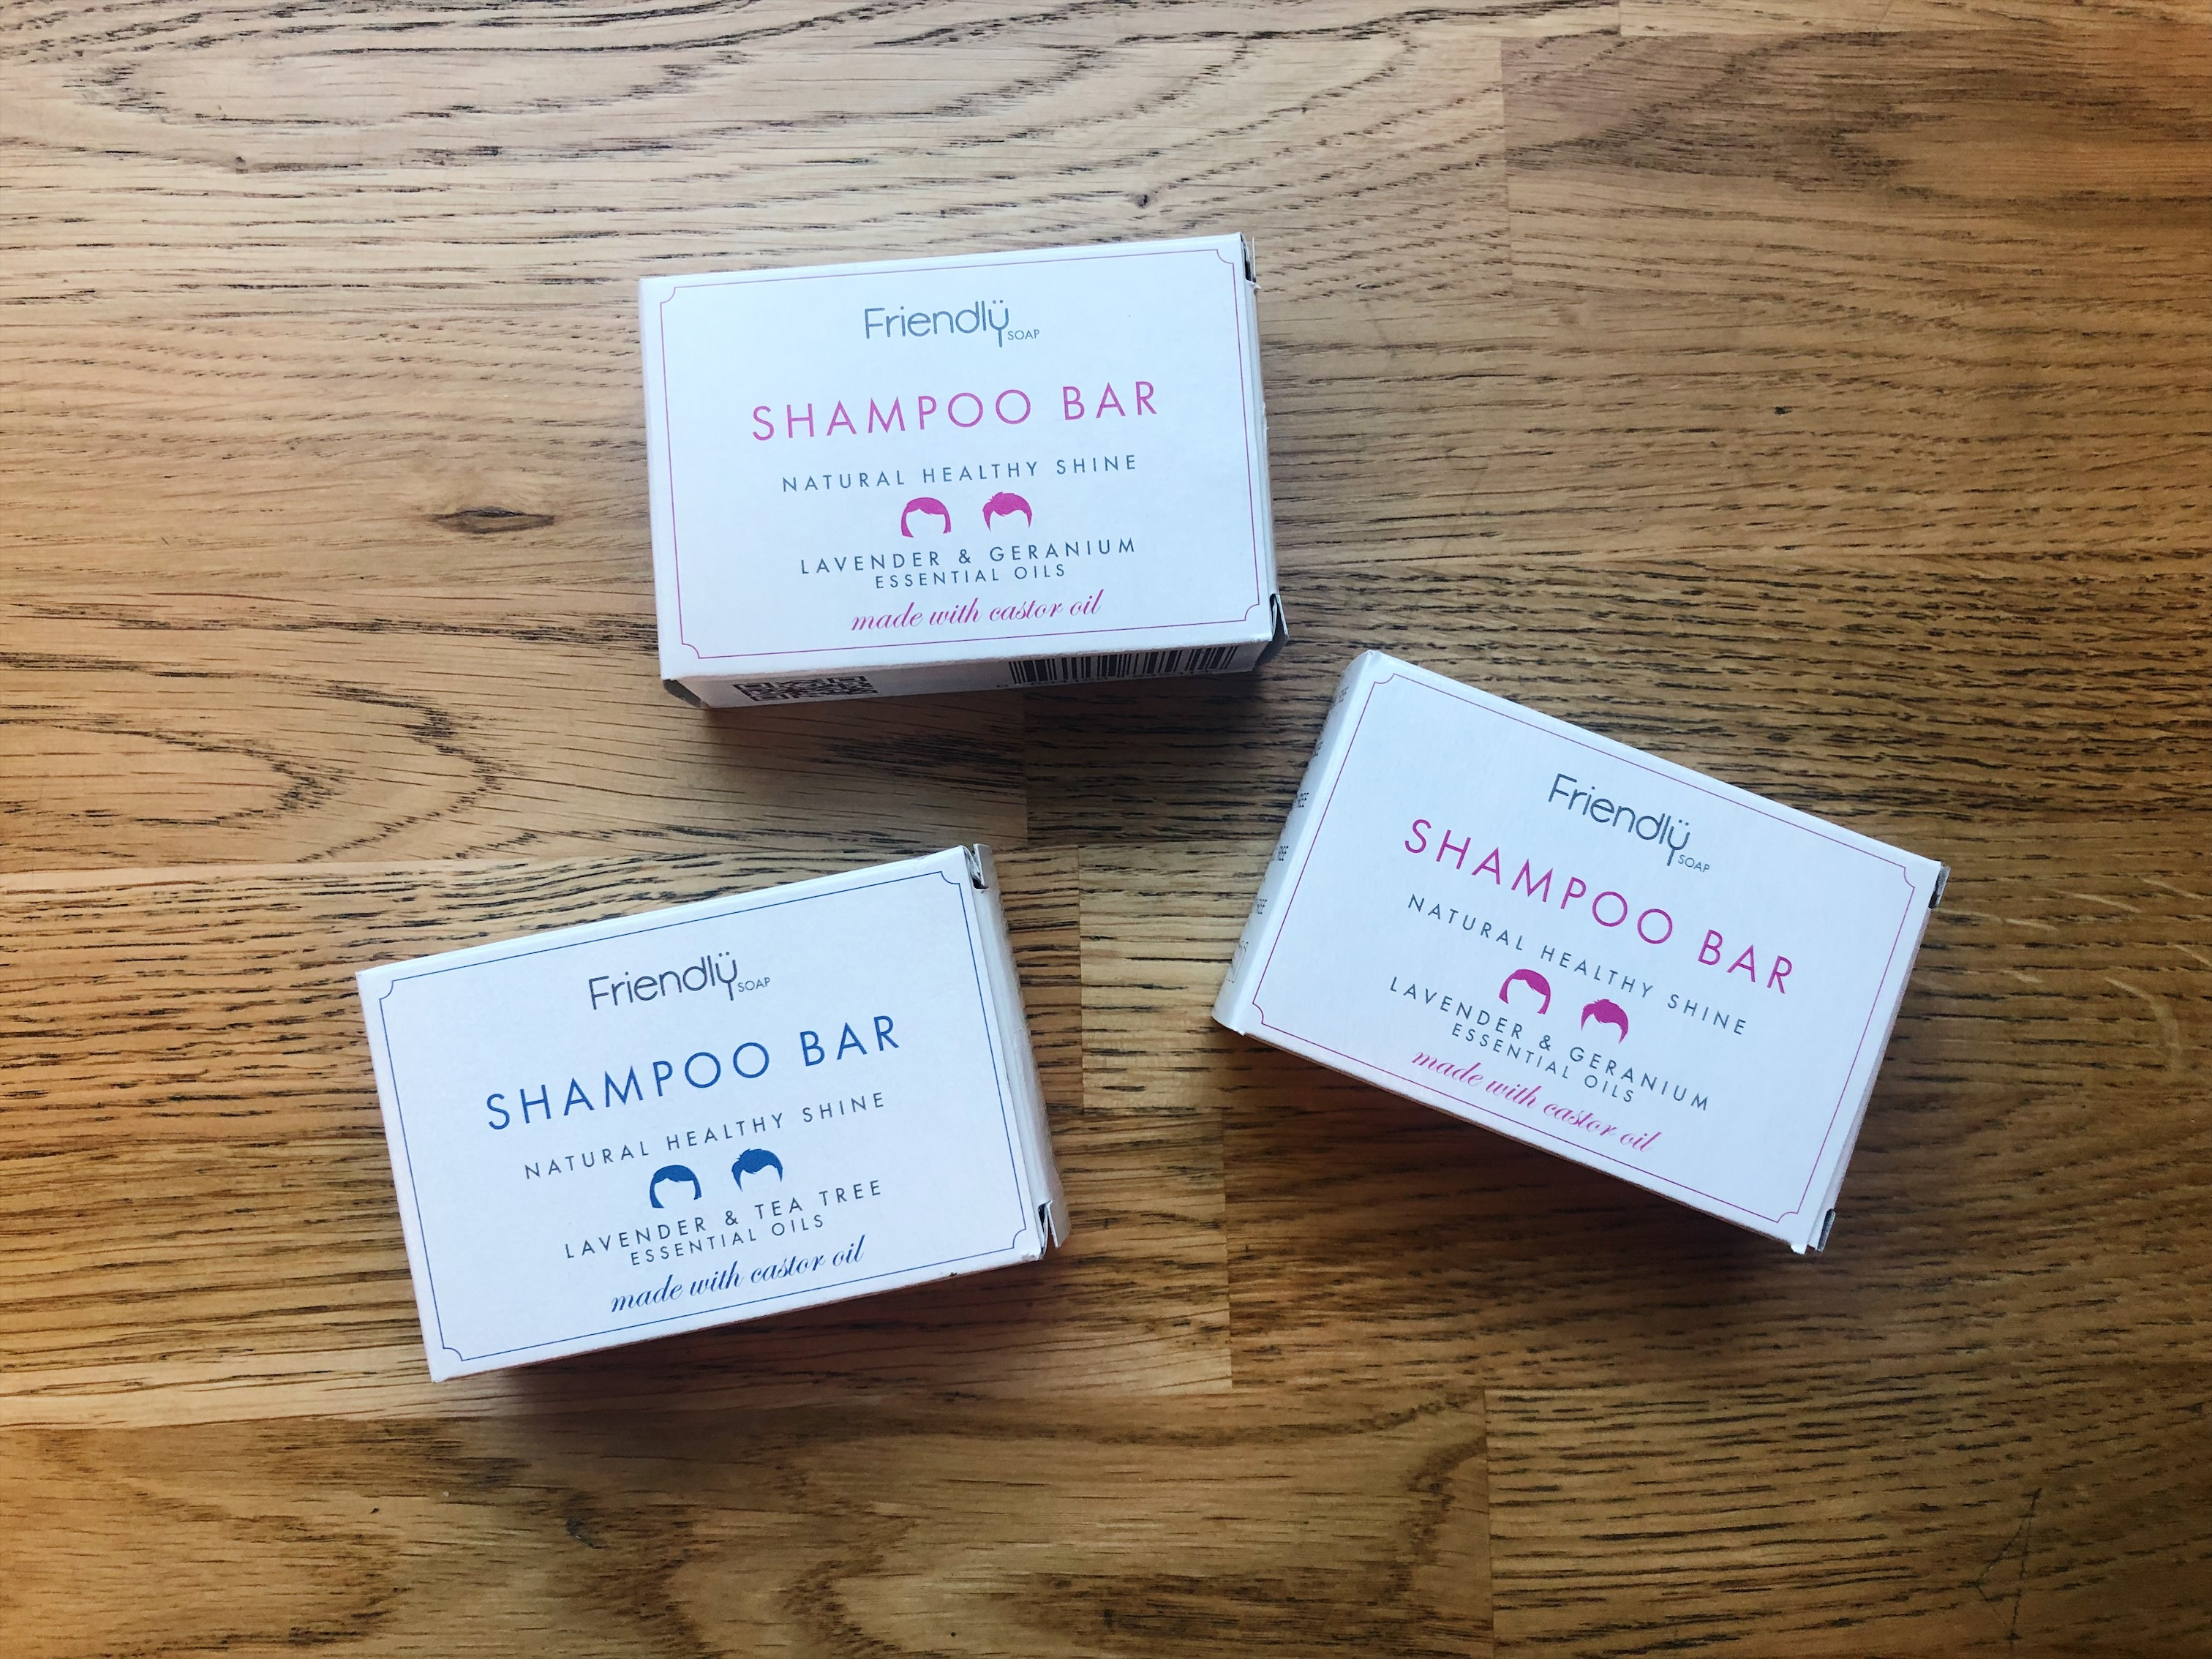 3 shampoo bars by Friendly Soap